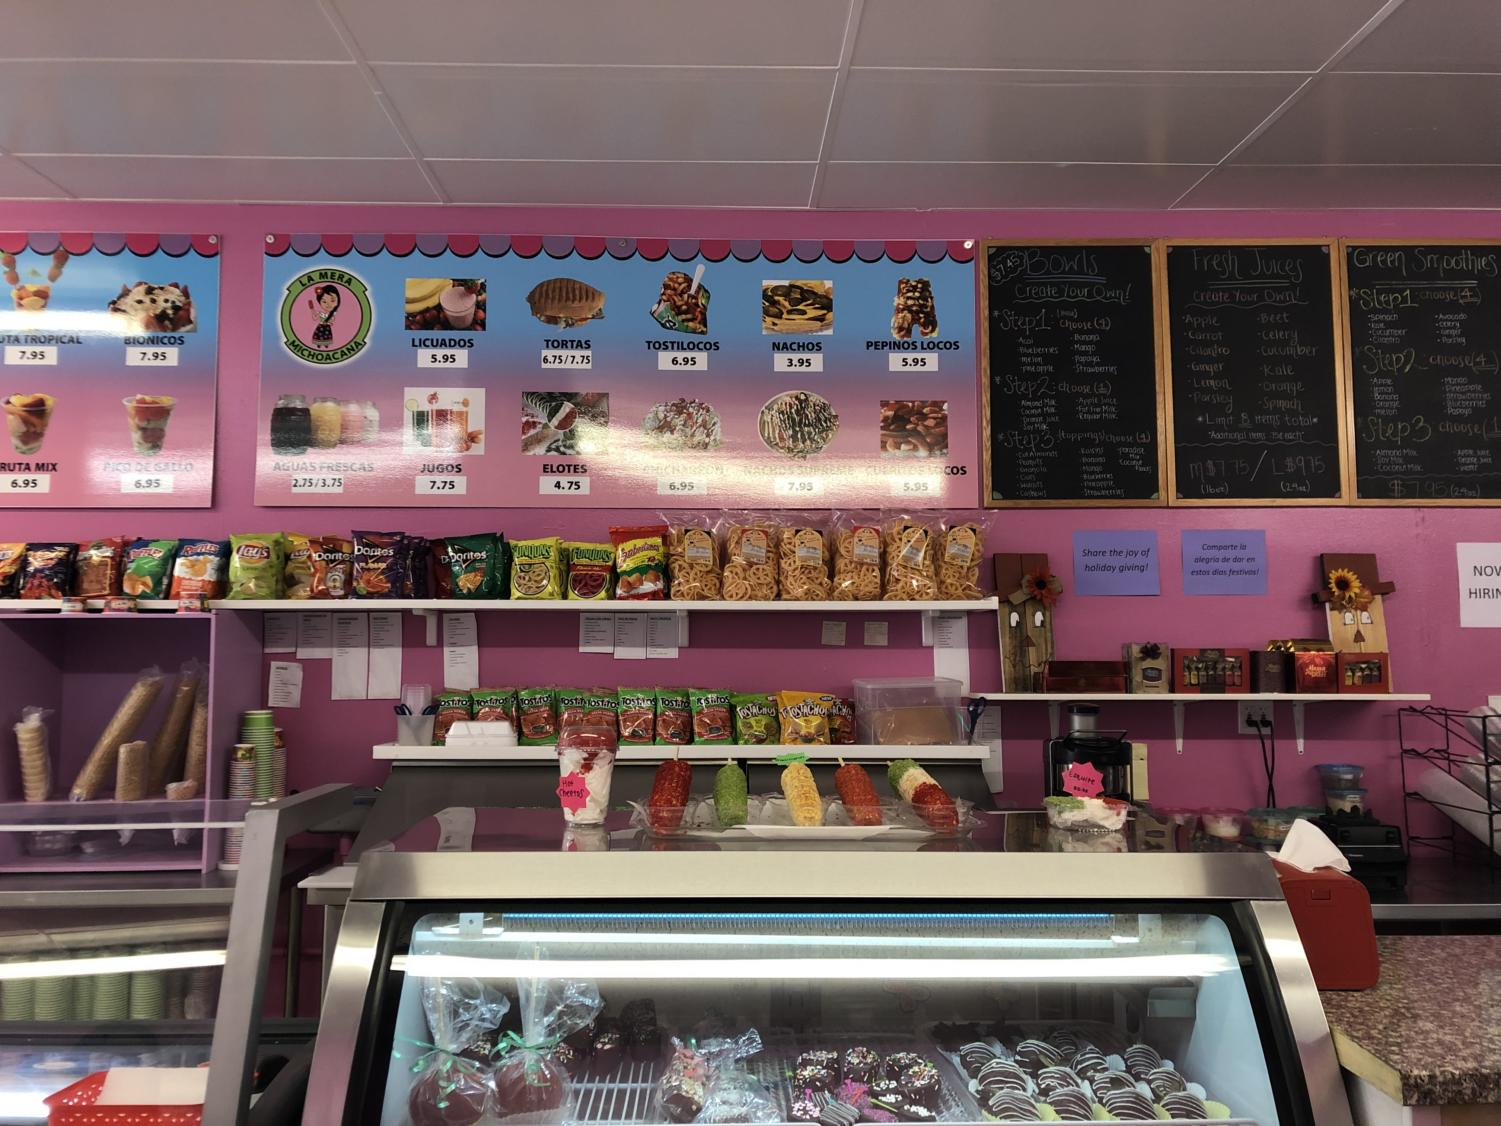 La Mera Michoacana ice cream shop located by Toppers off Arneill Rd.